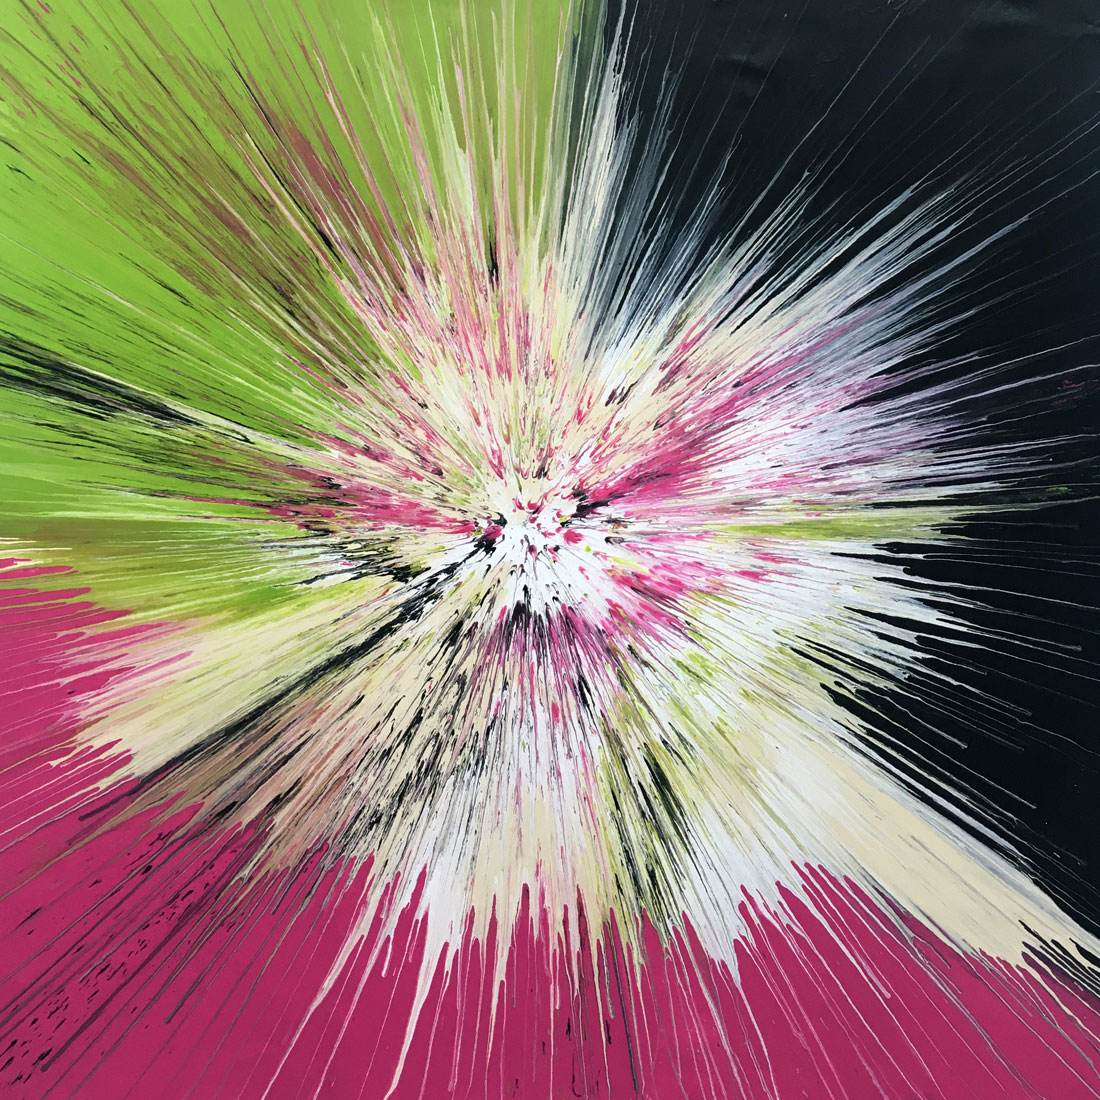 abstract lime green and pink art by Swarez